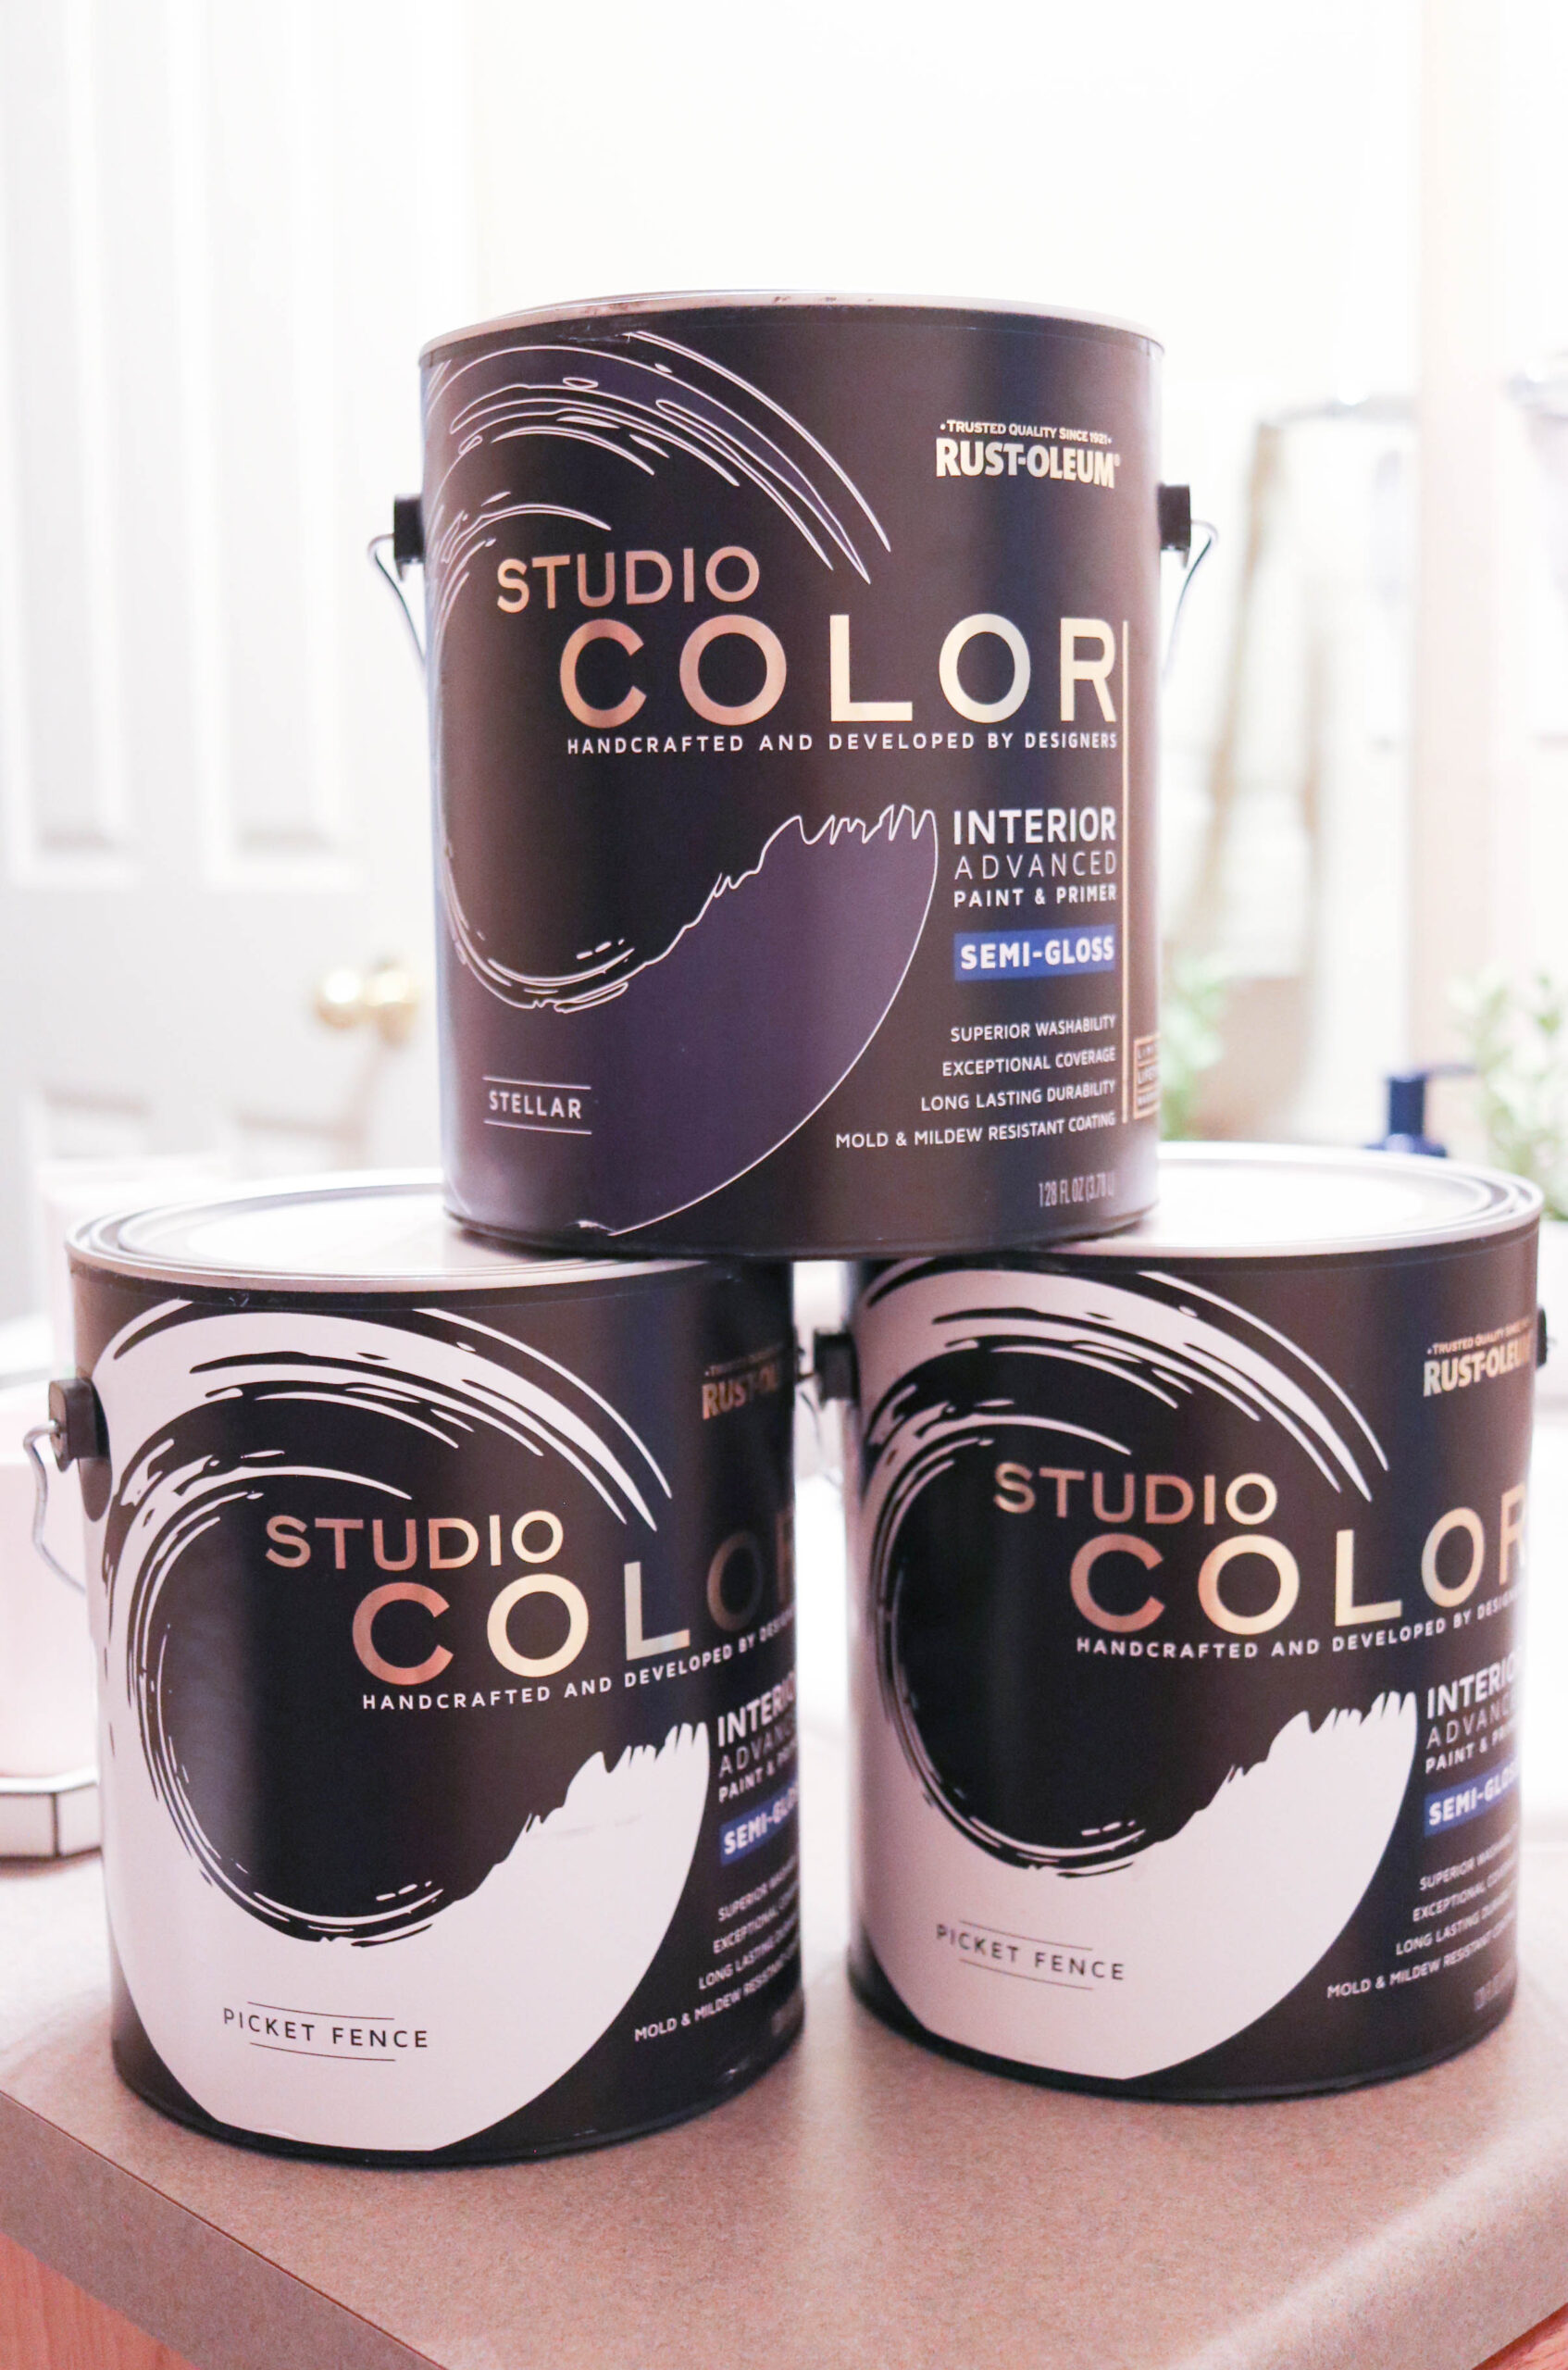 rustoleum studio color wall paint interior paint diy #diy #sponsored